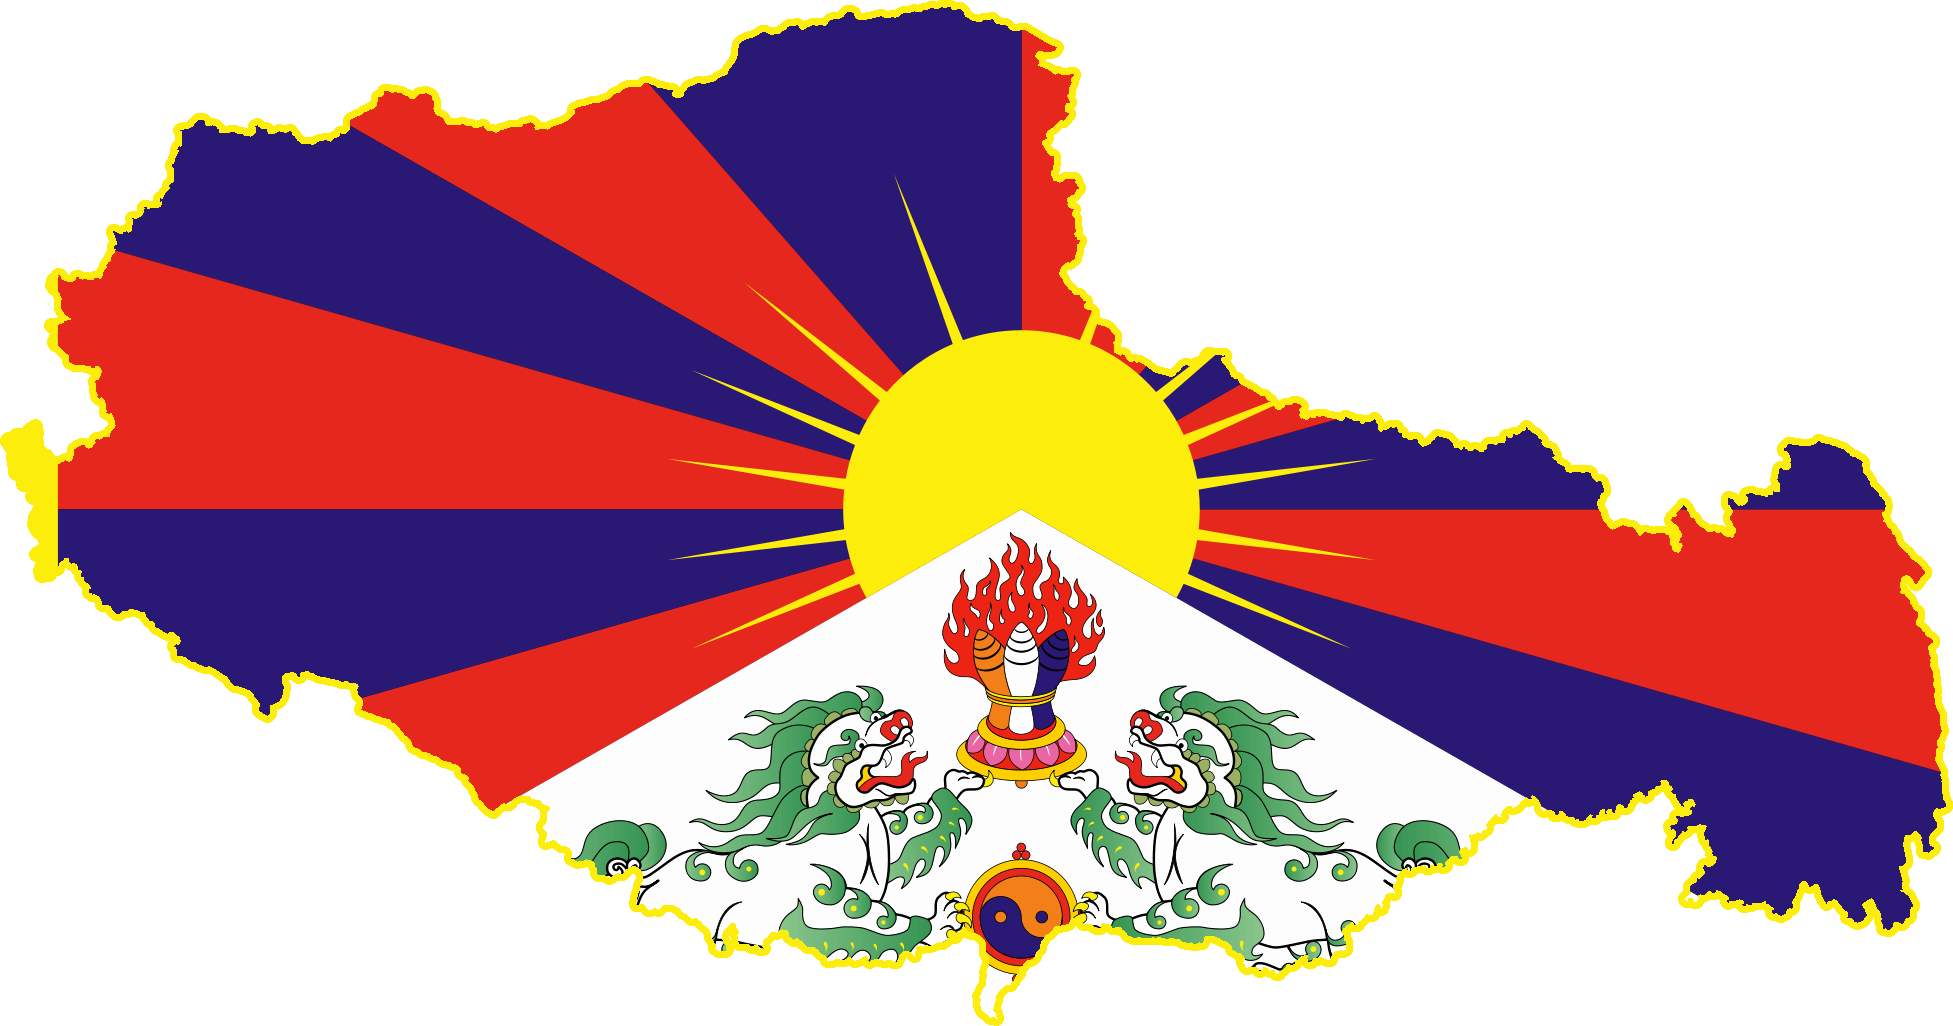 File:Flag map of Tibet.png - Wikimedia Commons